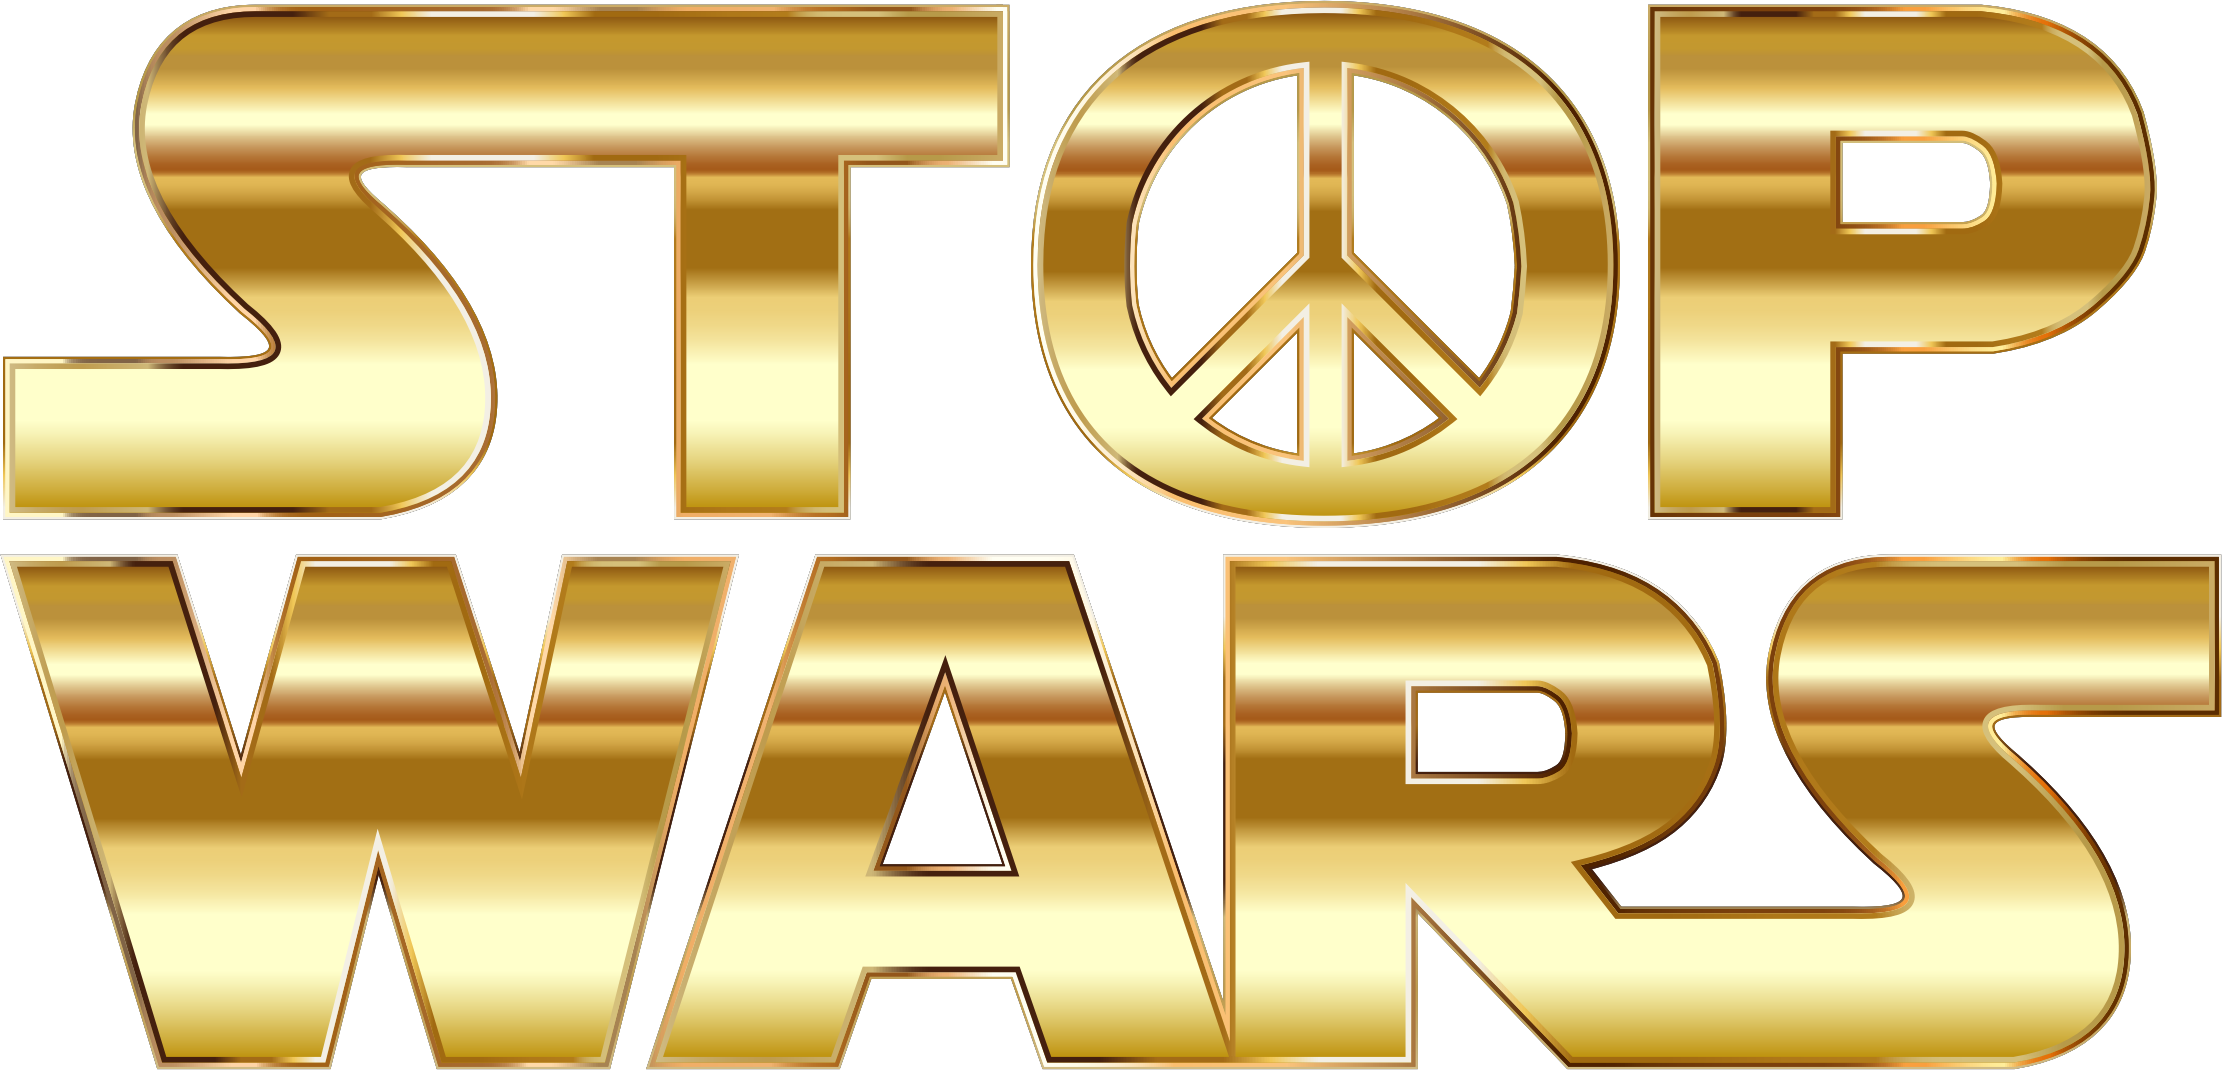 Stop Wars Gold No Background by GDJ